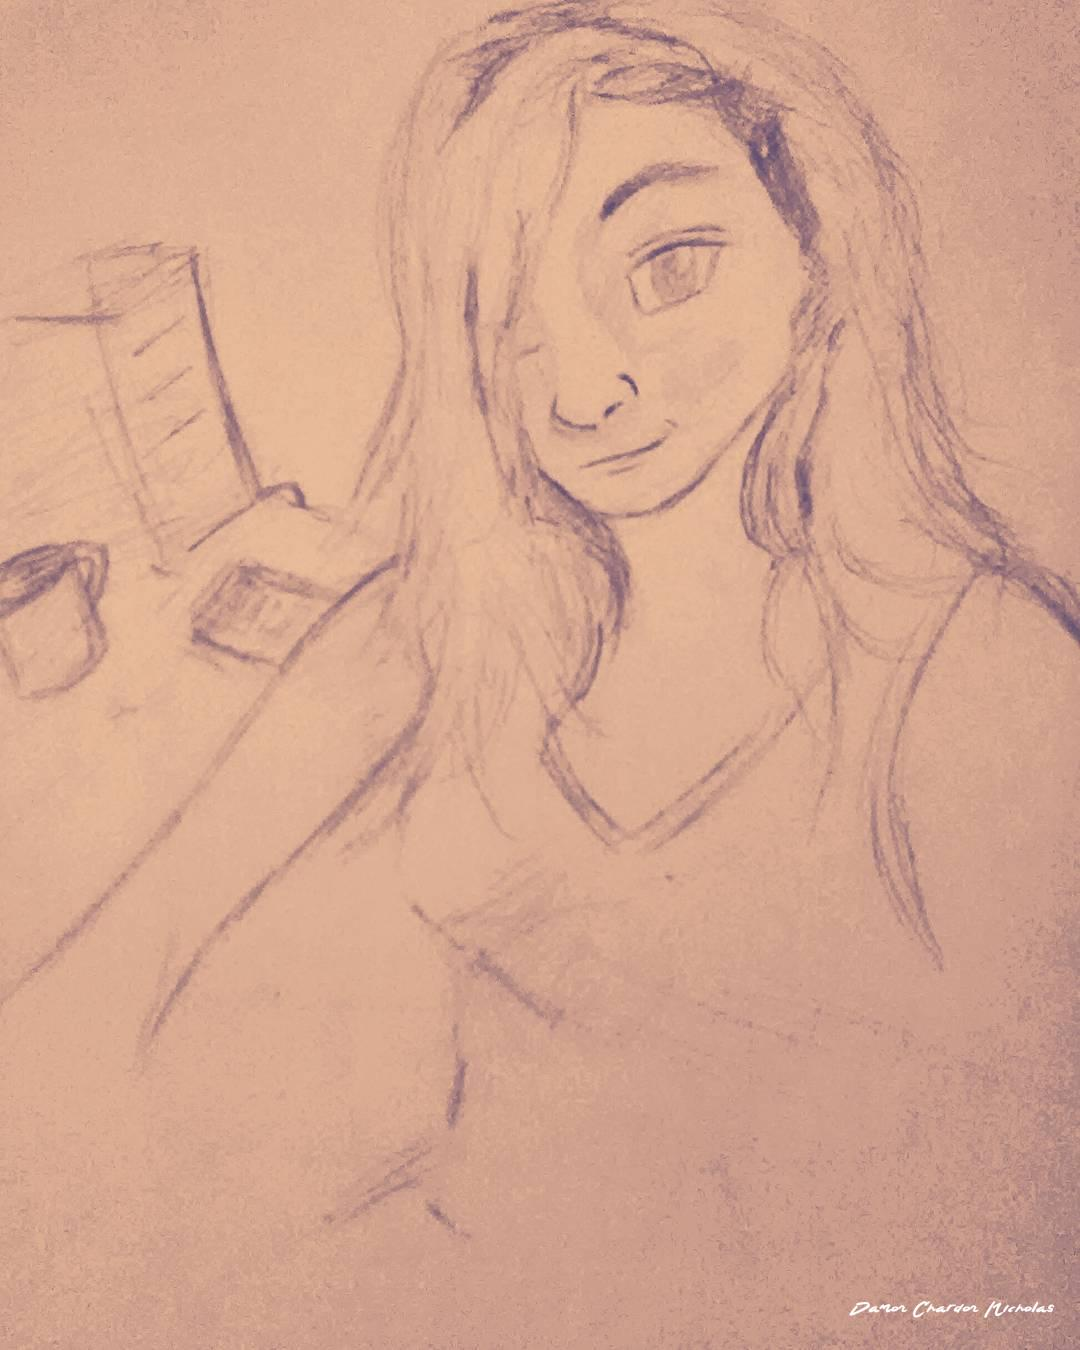 Sketched by Chardon